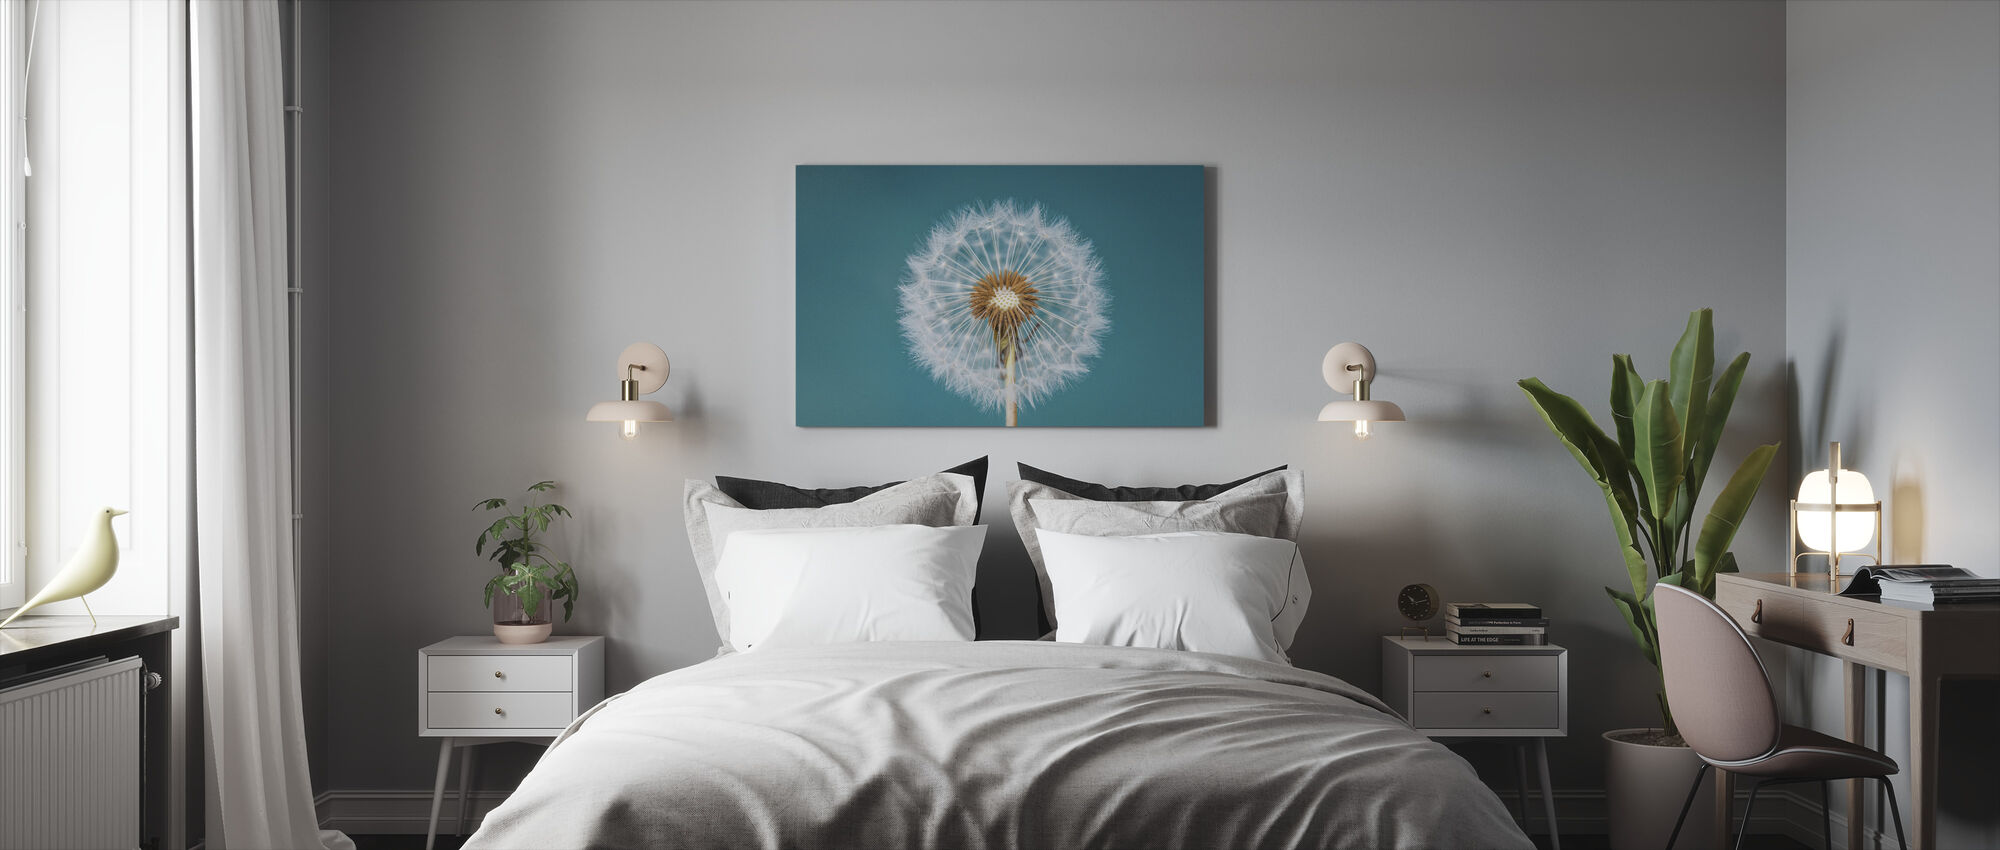 Dandelion - Canvas print - Bedroom